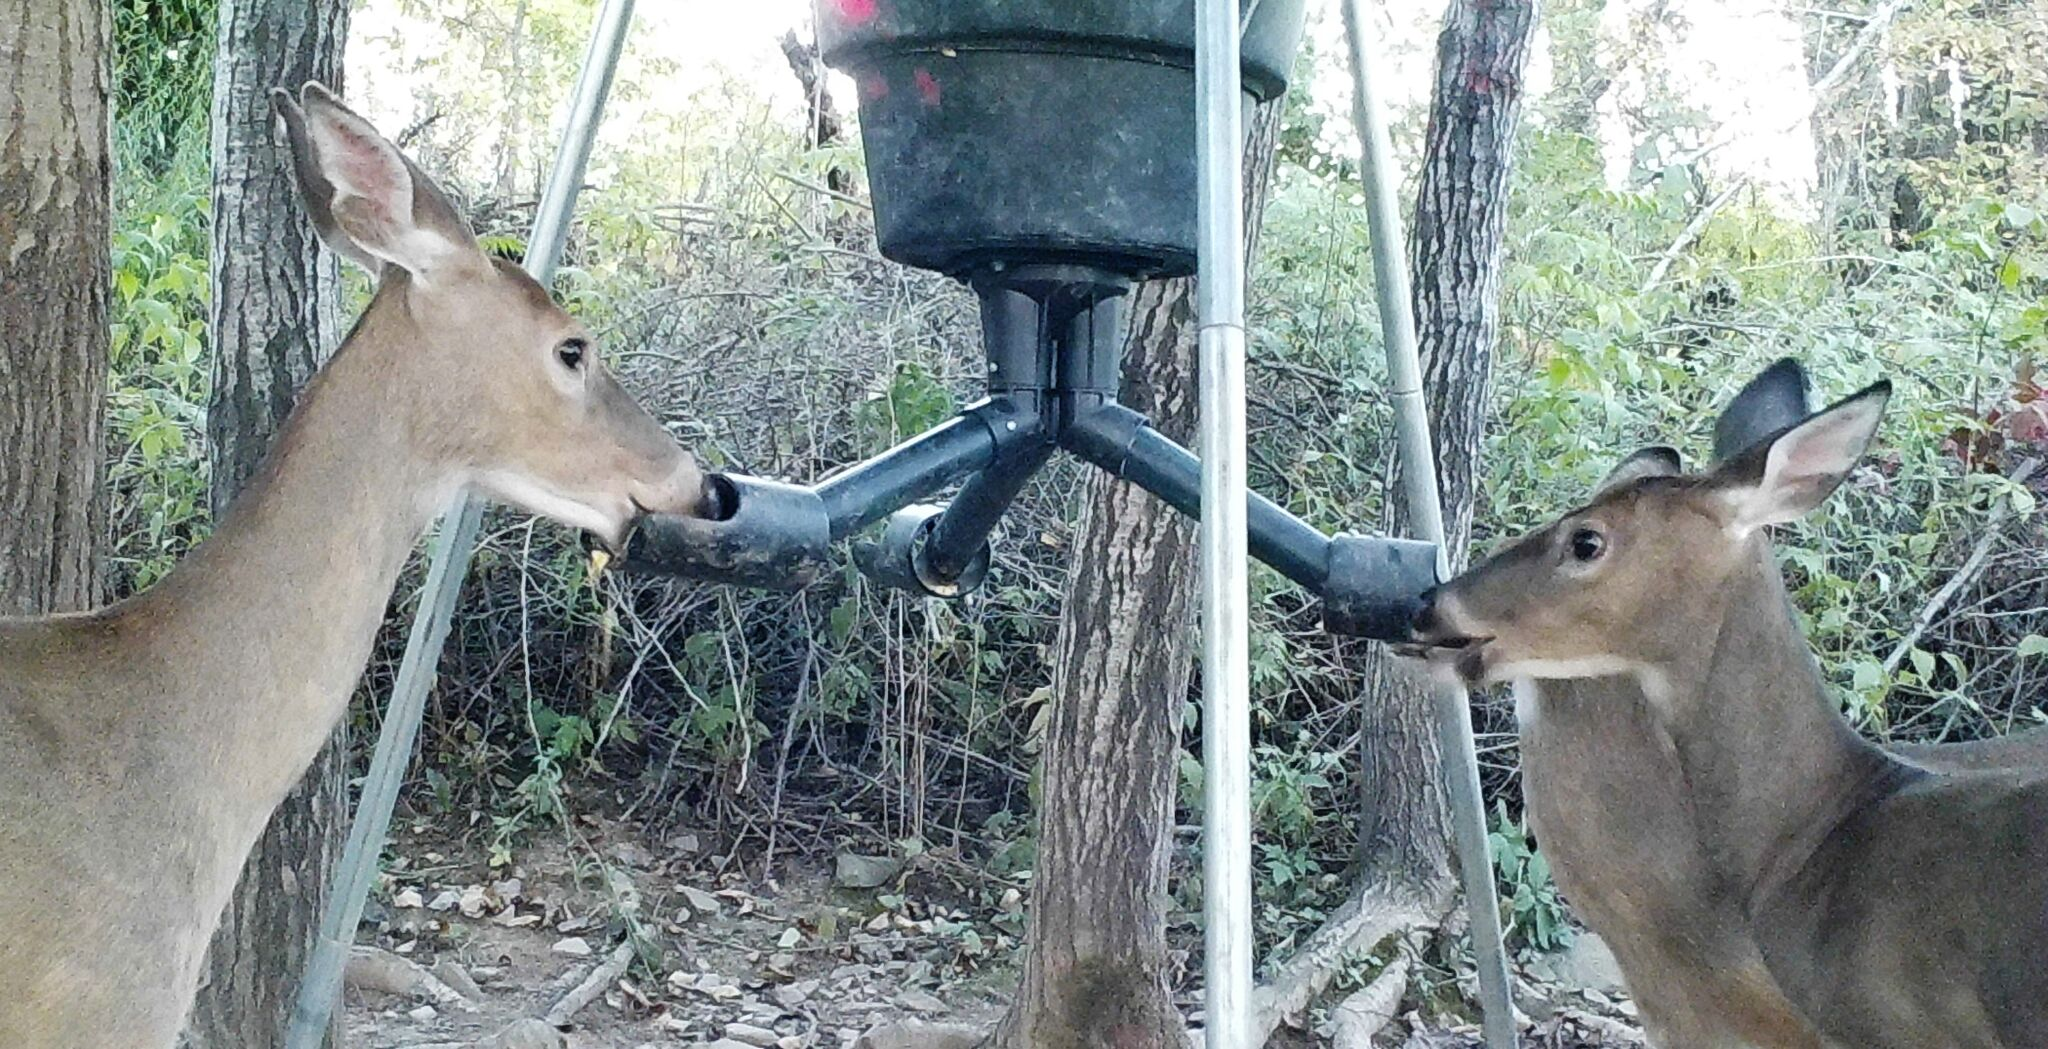 doe_and_fawns_at_feeder1.jpg